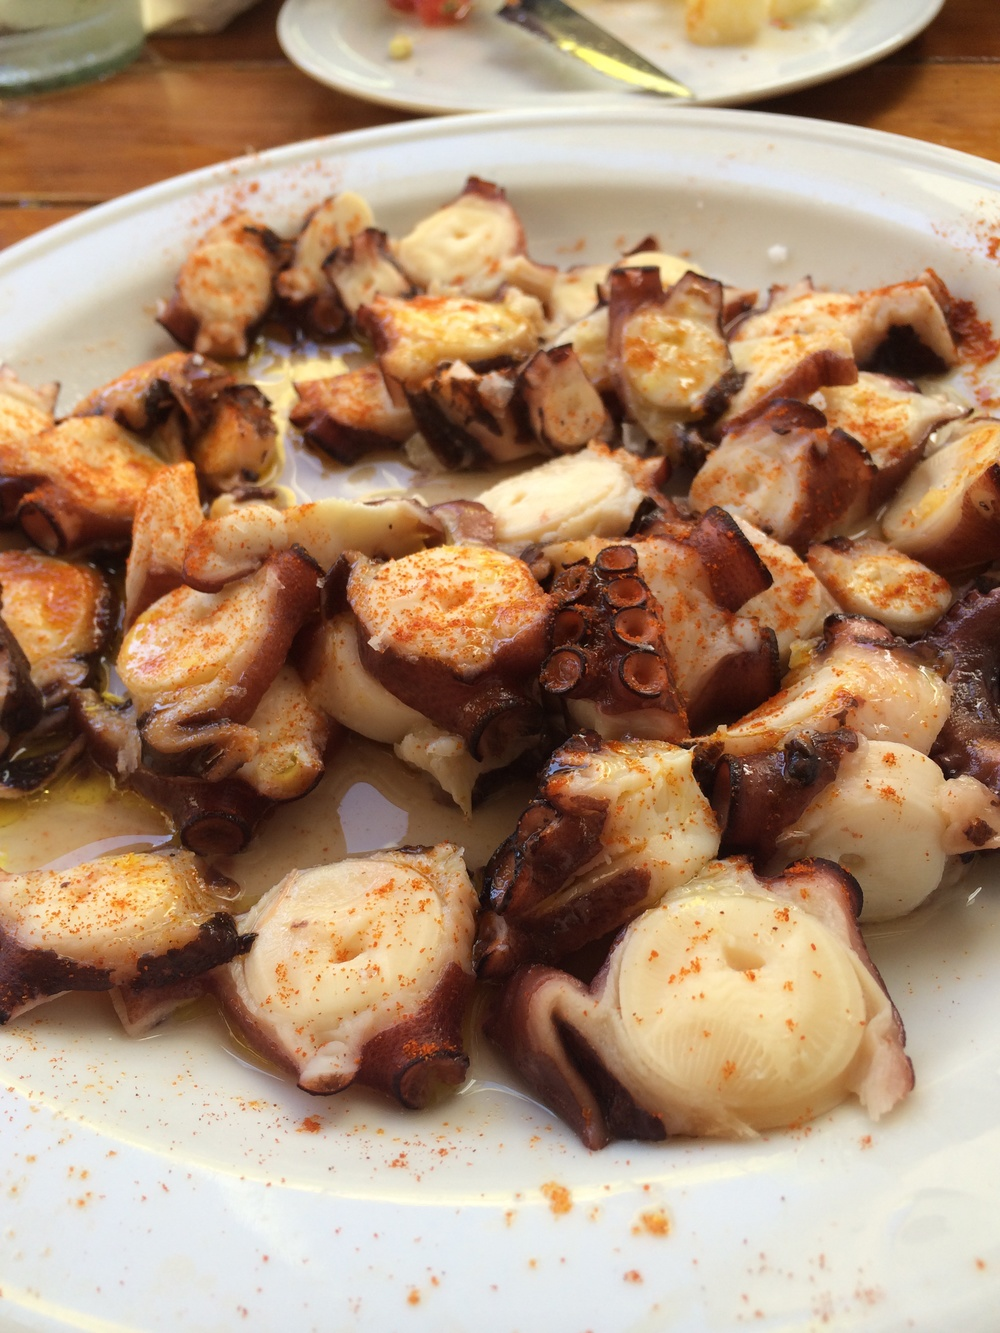 octopus starter in Puerto de Mogan